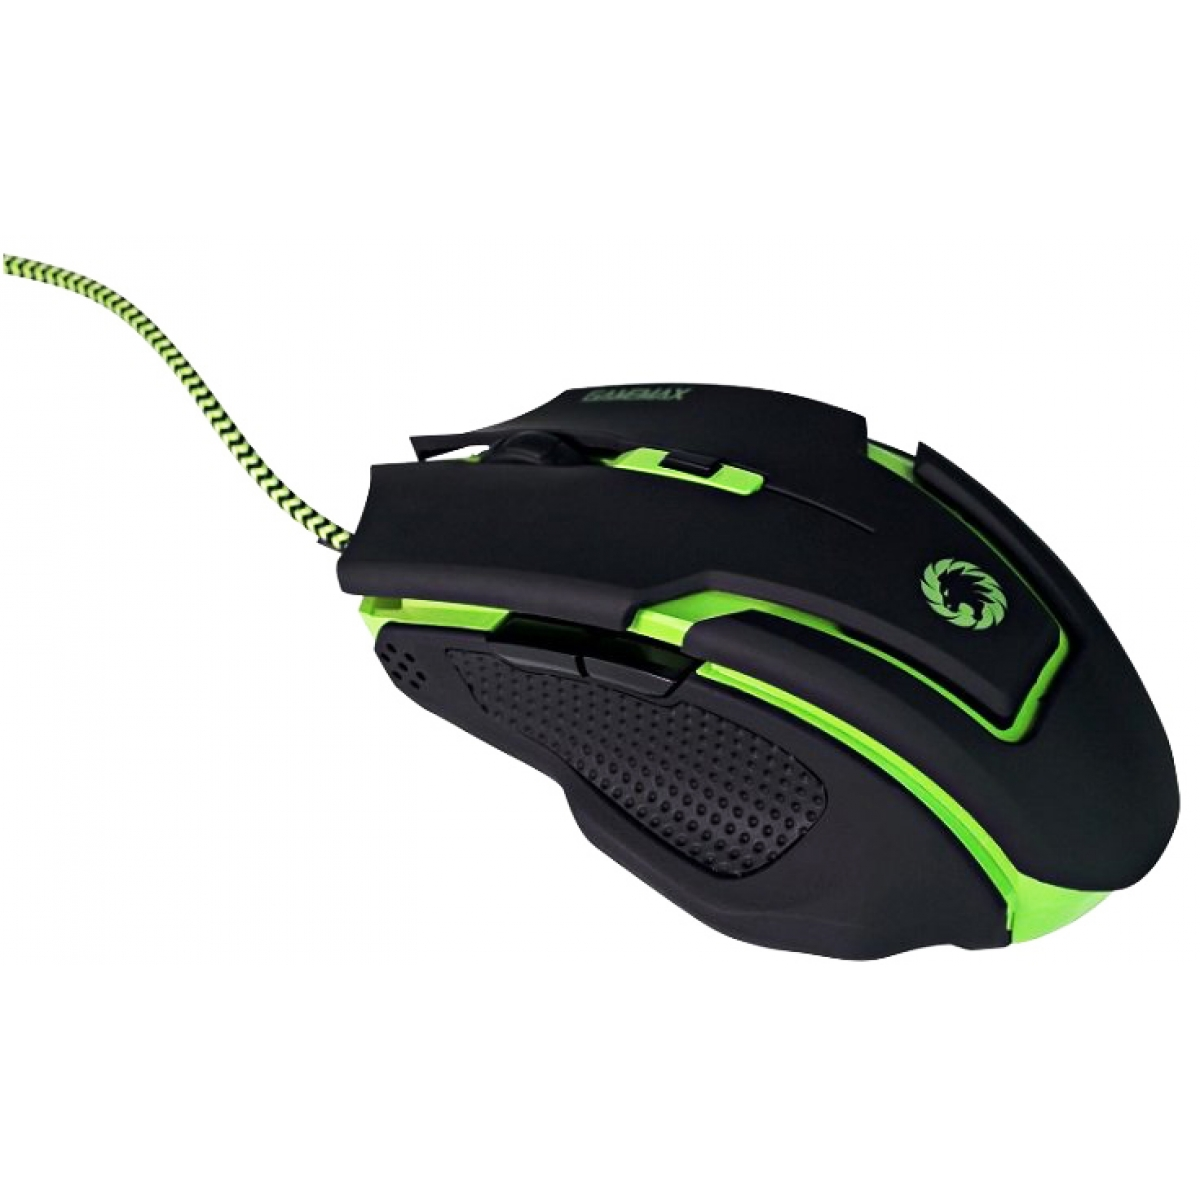 Mouse Gamer Gamemax MG319 2400 DPI Black